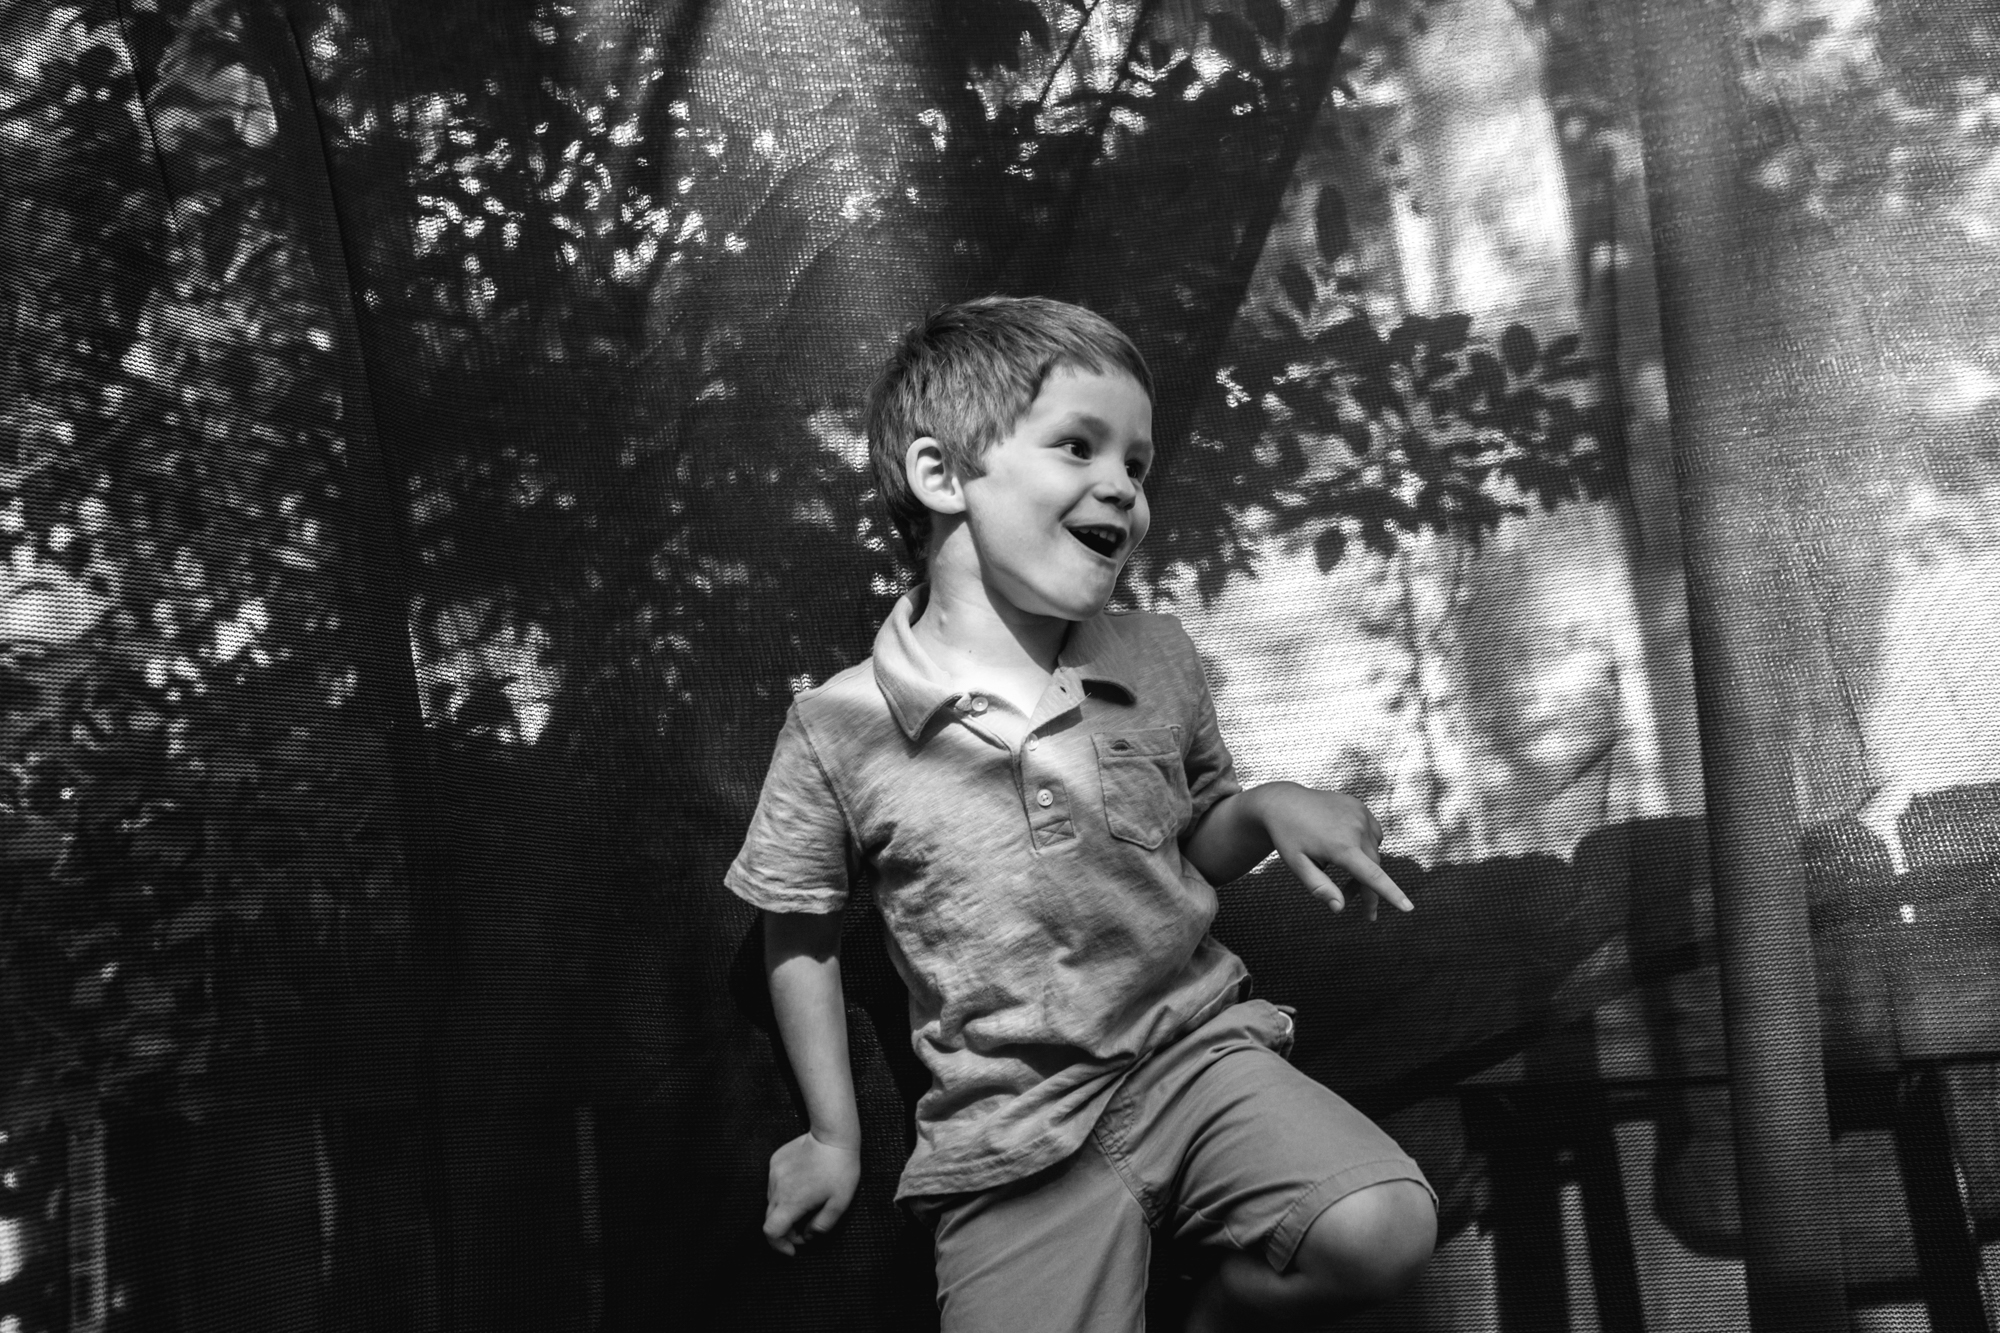 Boy dancing on the trampoline